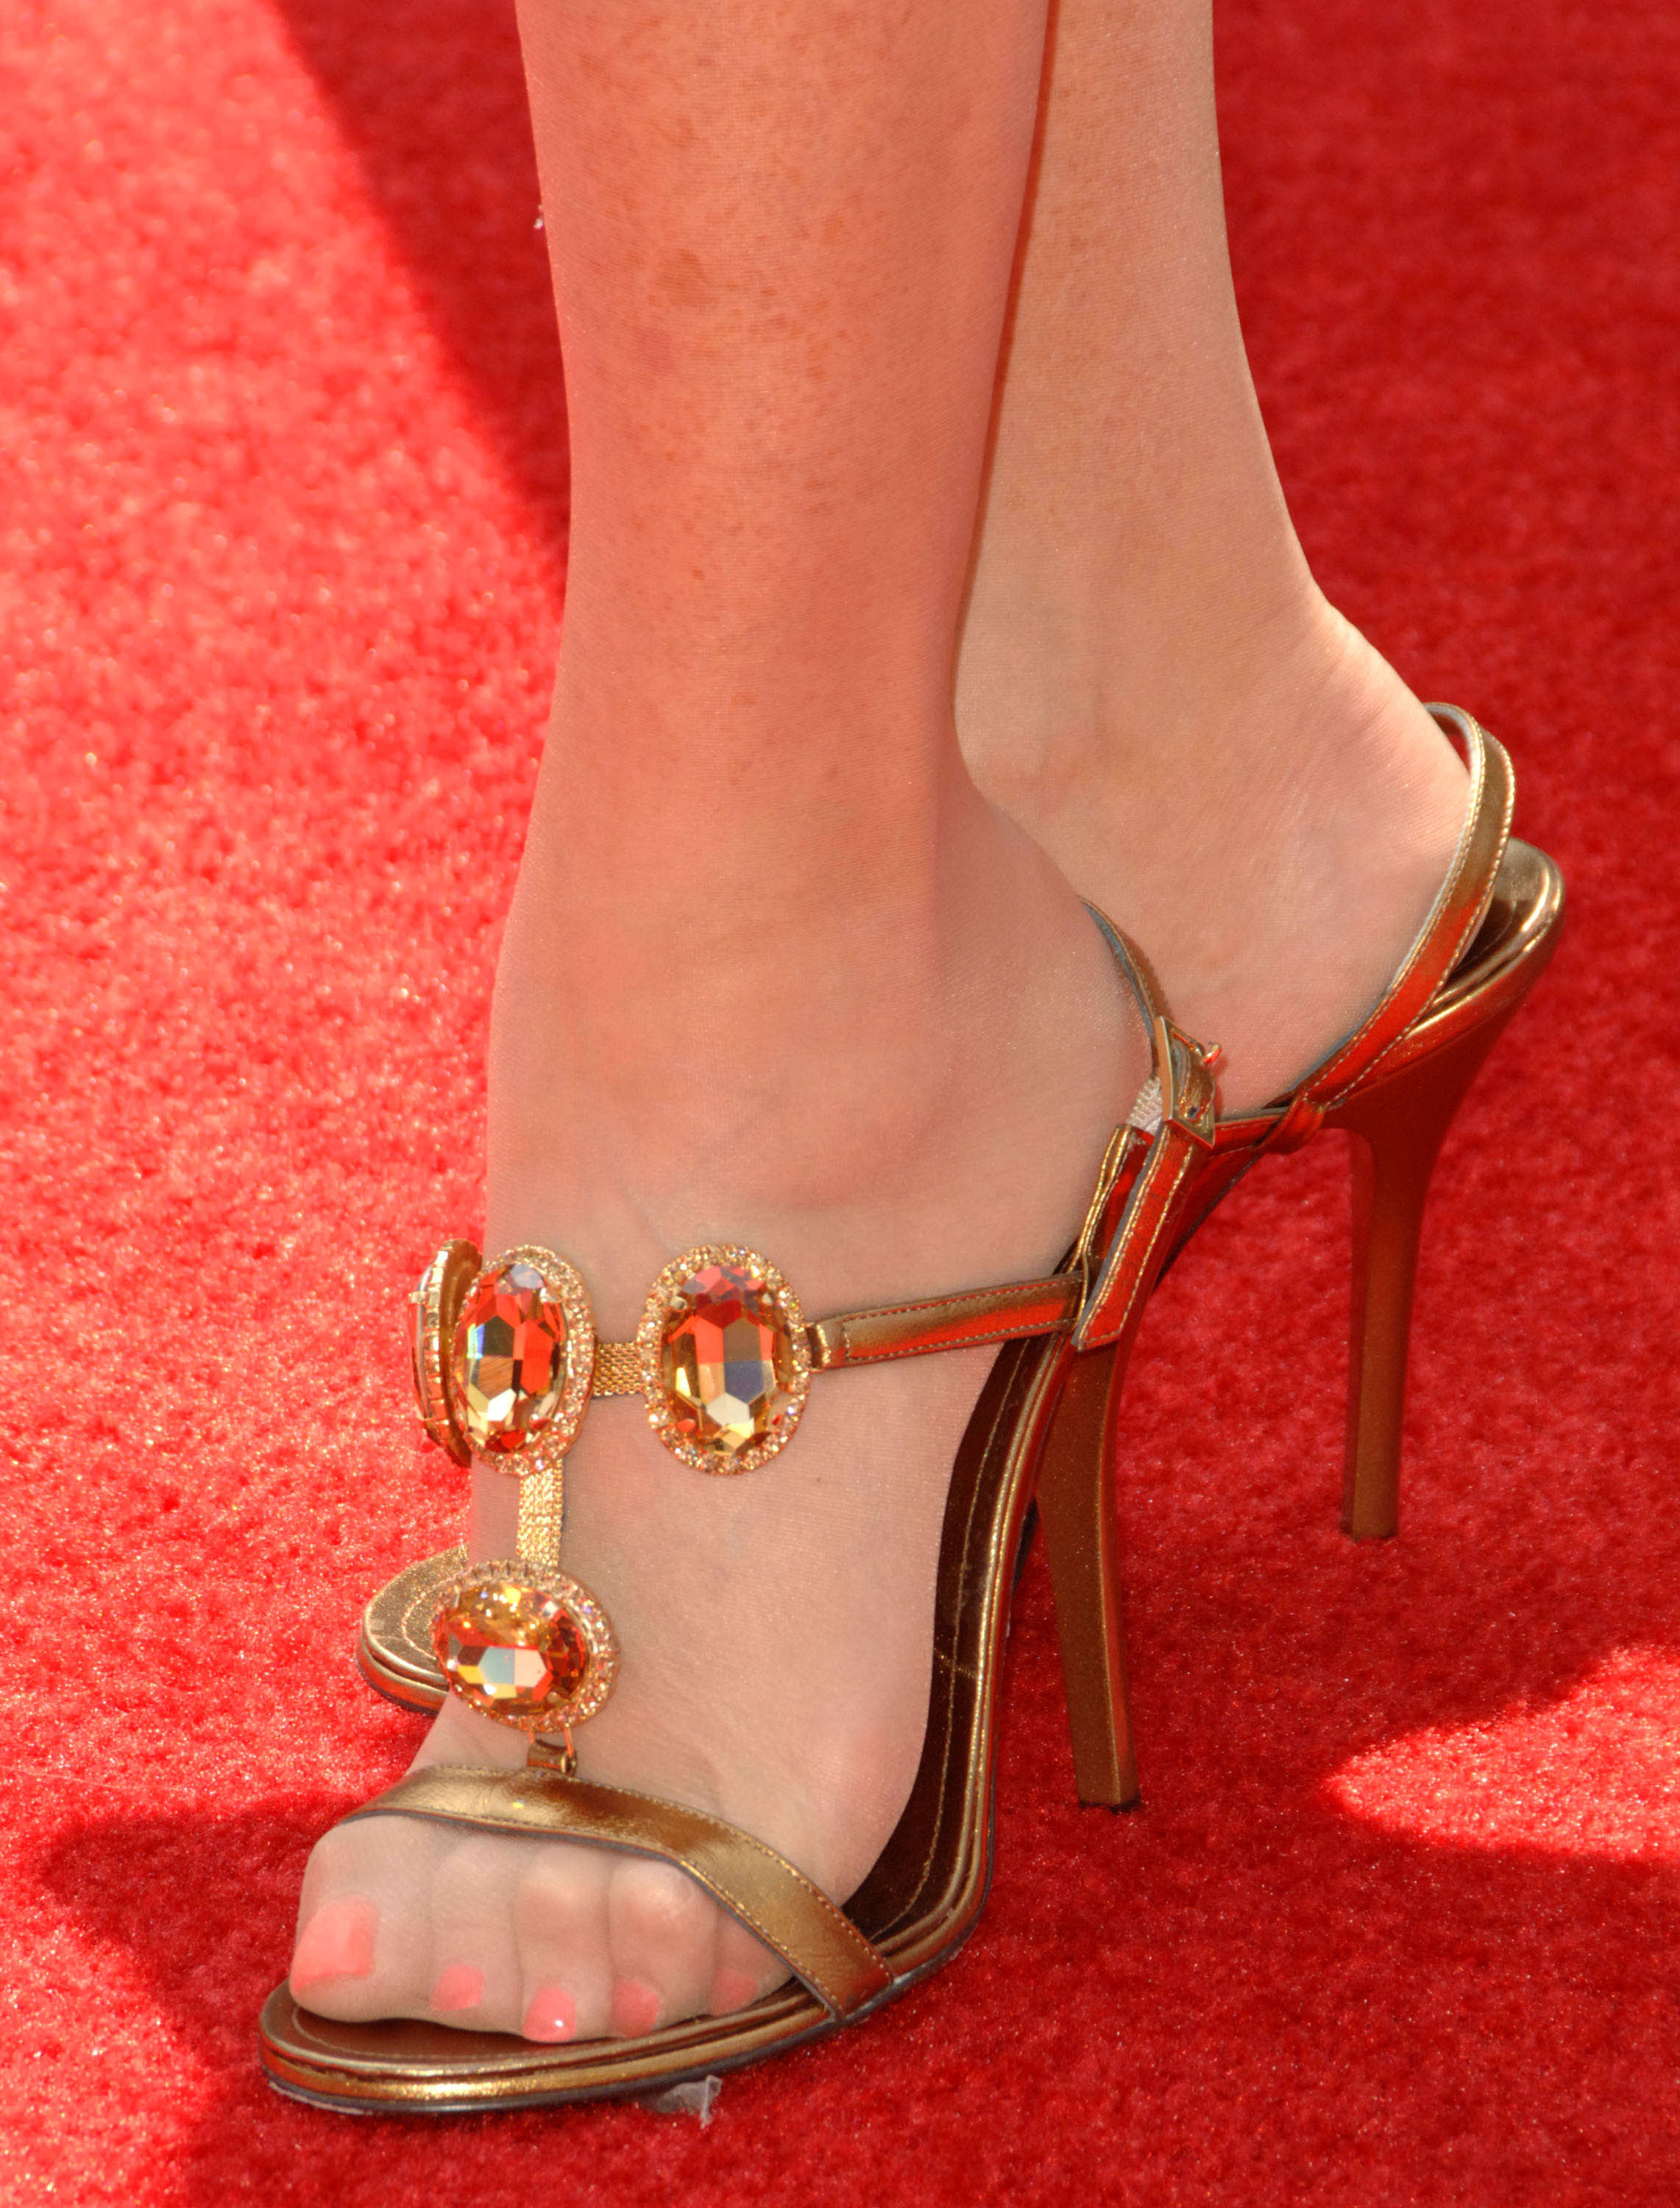 Image search: Jennette McCurdy's Feet